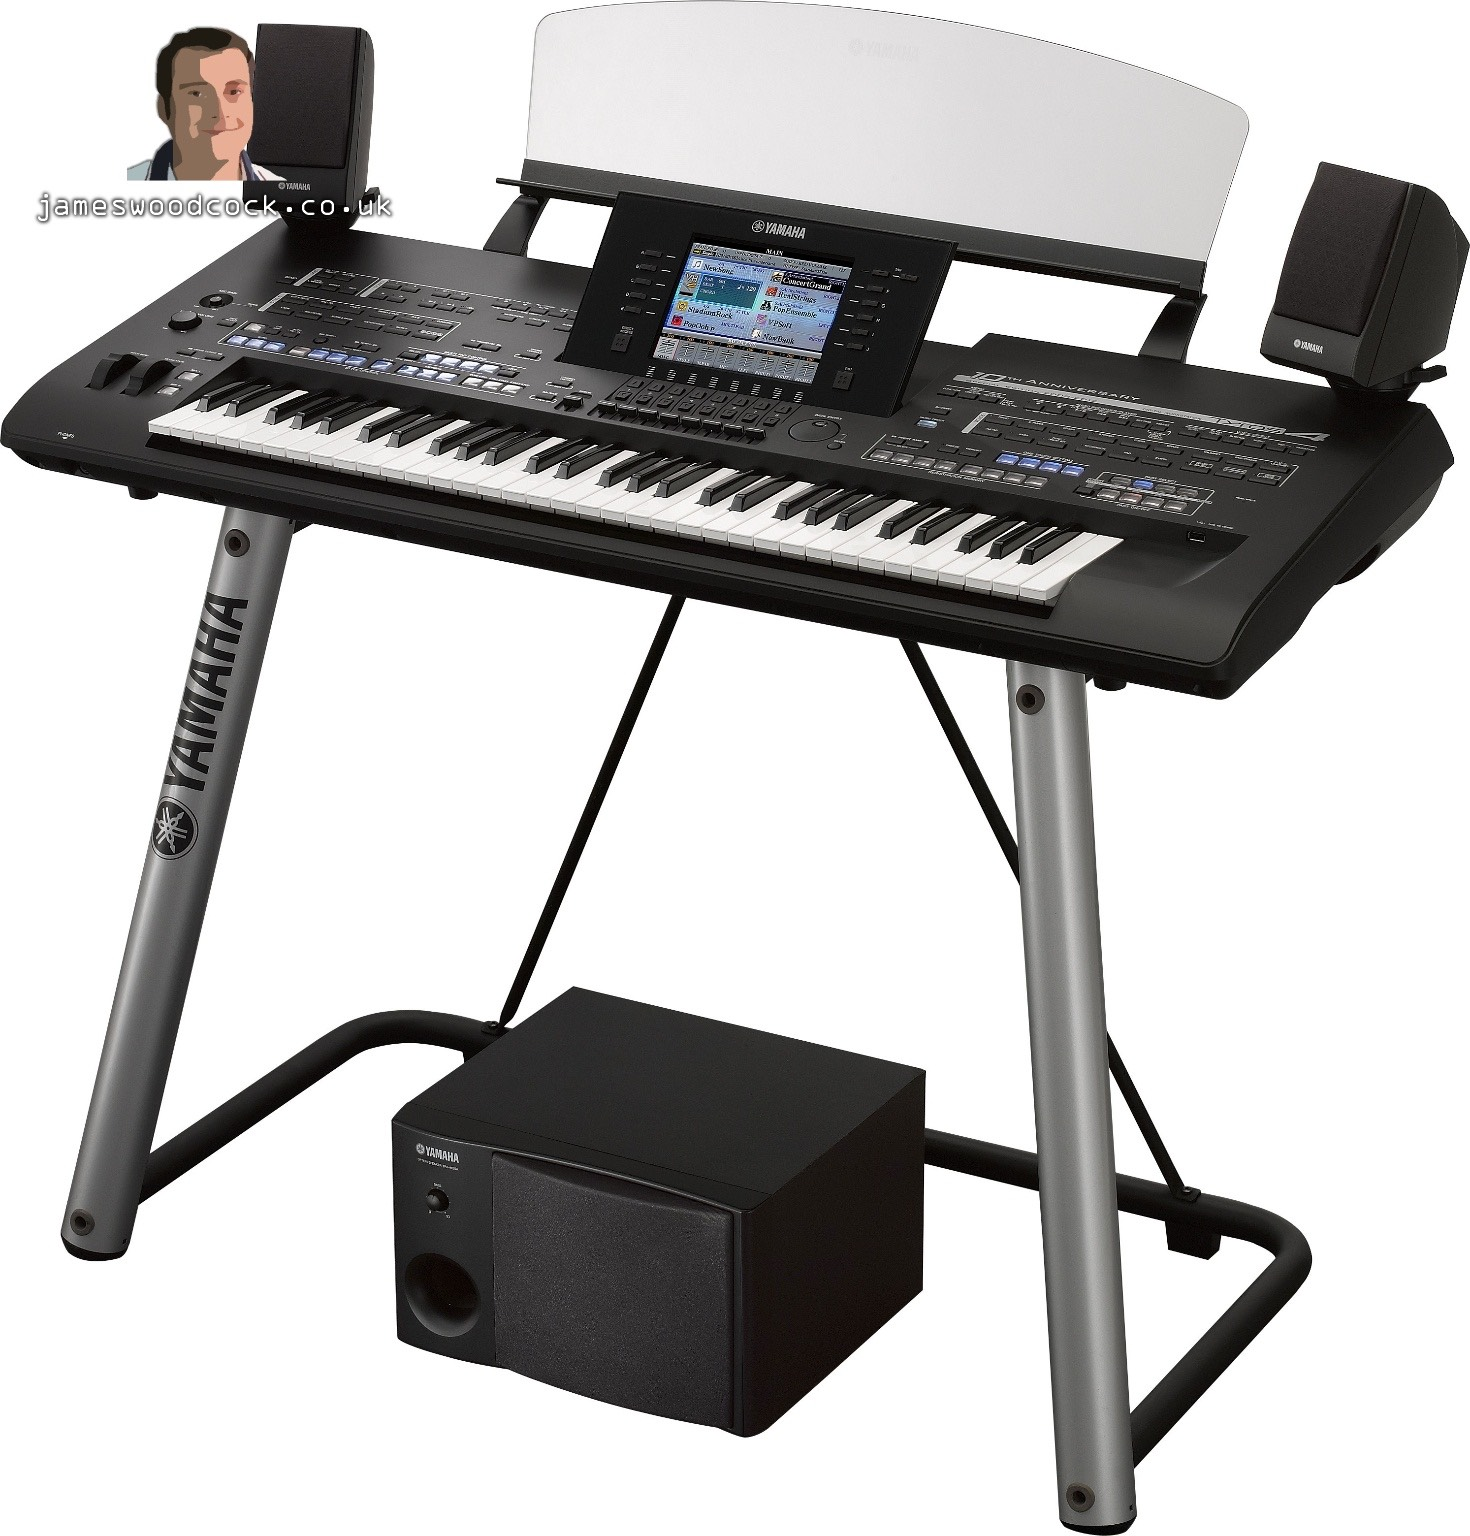 yamaha announce tyros4 keyboard 10th anniversary special. Black Bedroom Furniture Sets. Home Design Ideas